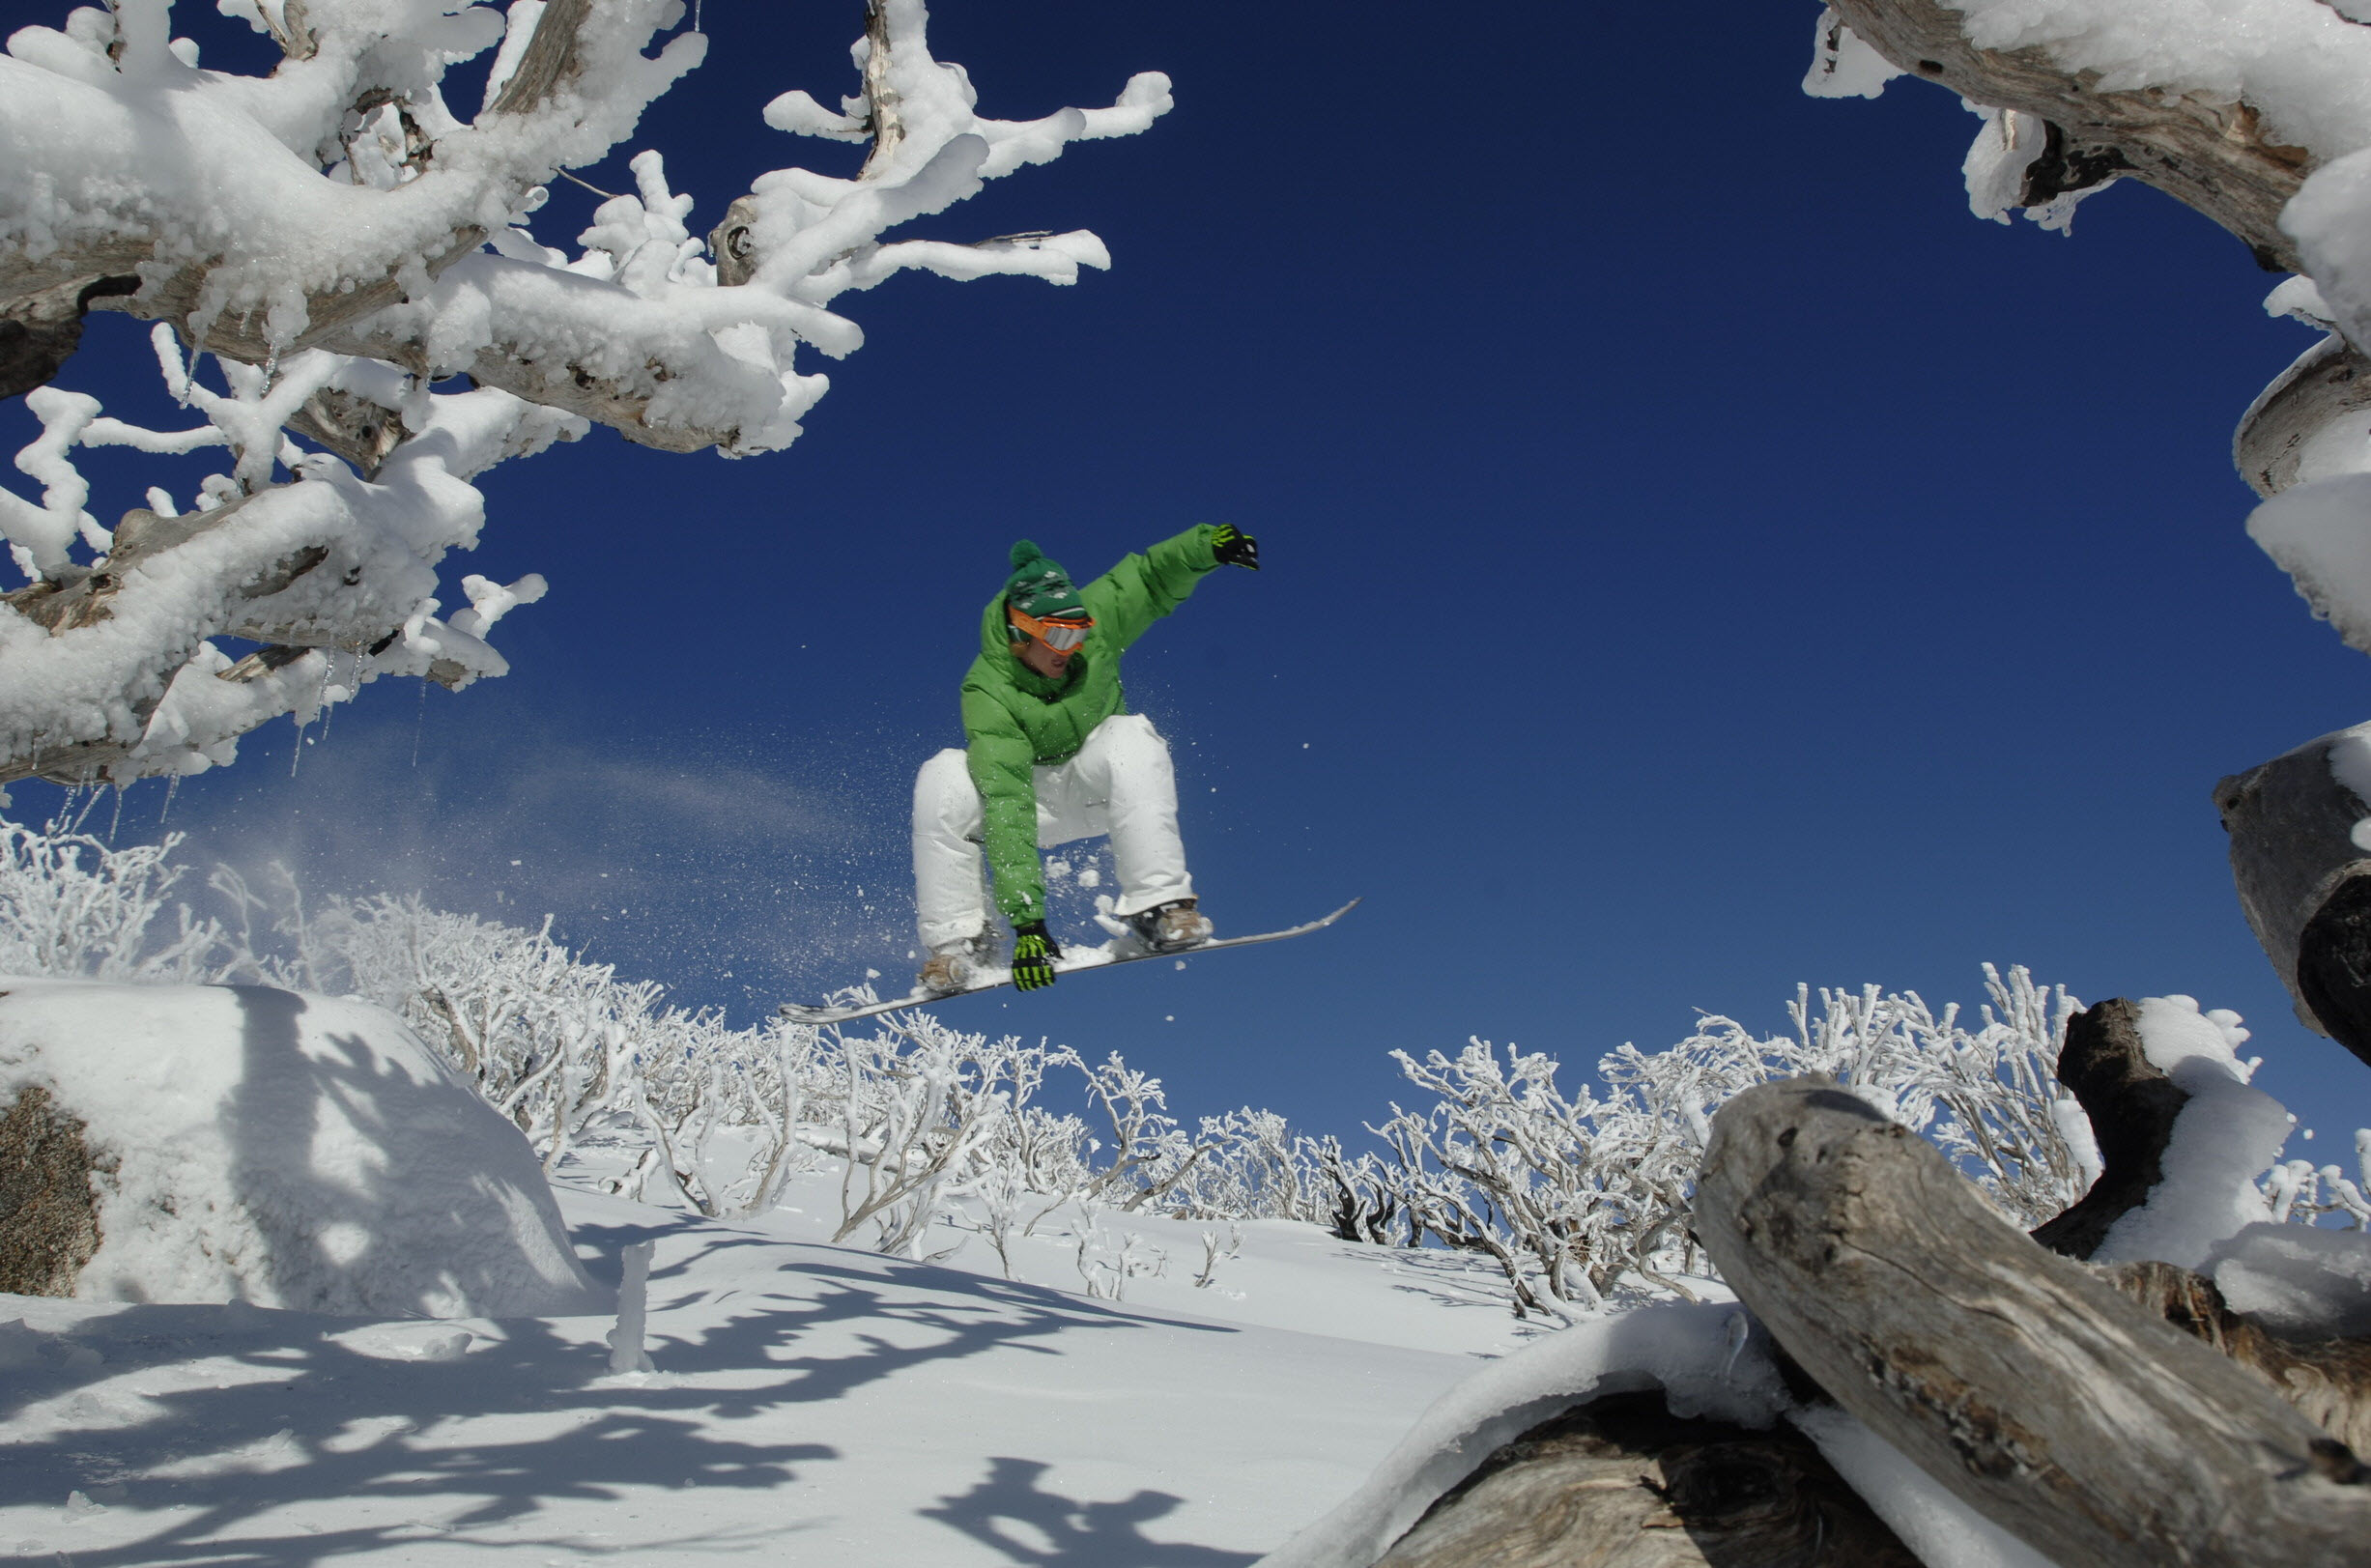 Snowboarding-at-Perisher-Snowy-Mountains-Image-Credit-Perisher